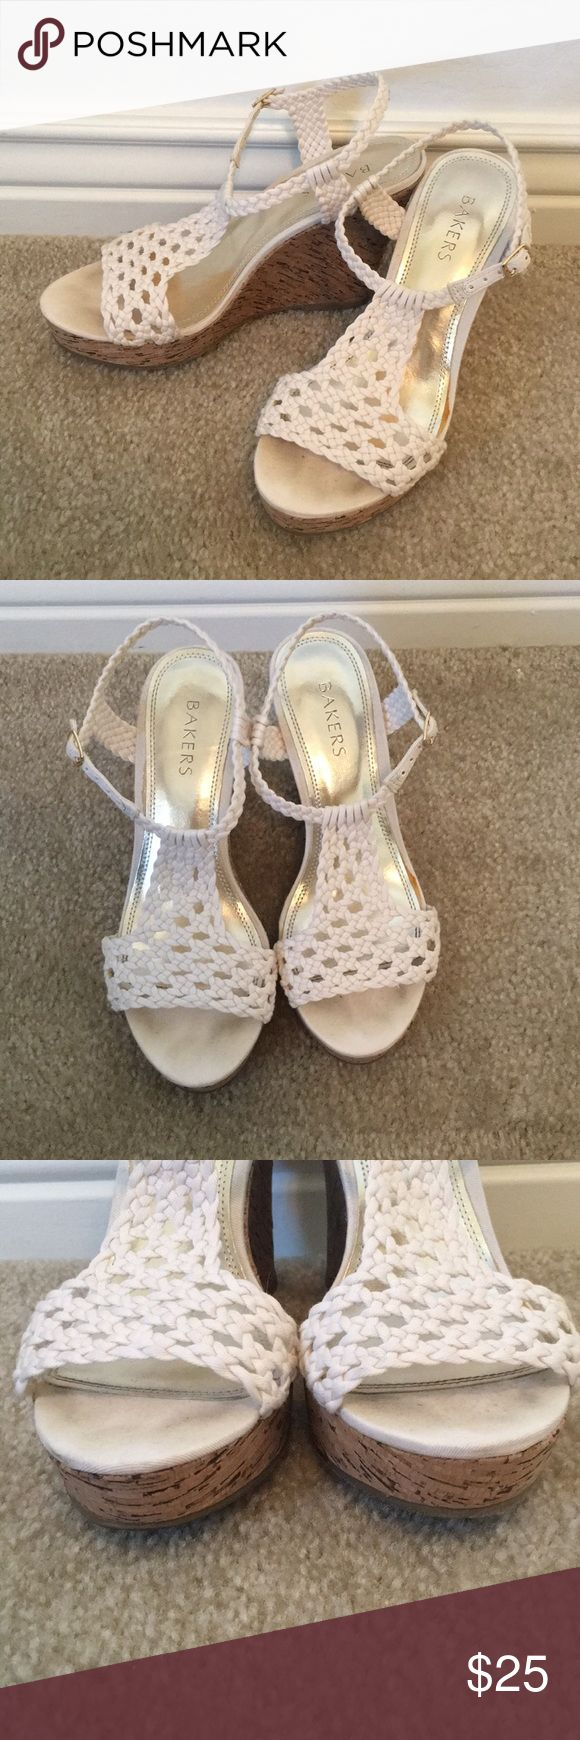 """Bakers cream wedge Bakers cream color wedge. Only worn once, these are in excellent condition. These are so cute, but sadly they no longer fit me. The wedge height is 4"""". The sticker on the bottom show size 7.5 but it's so small I can't capture in photograph. Bakers Shoes Wedges"""